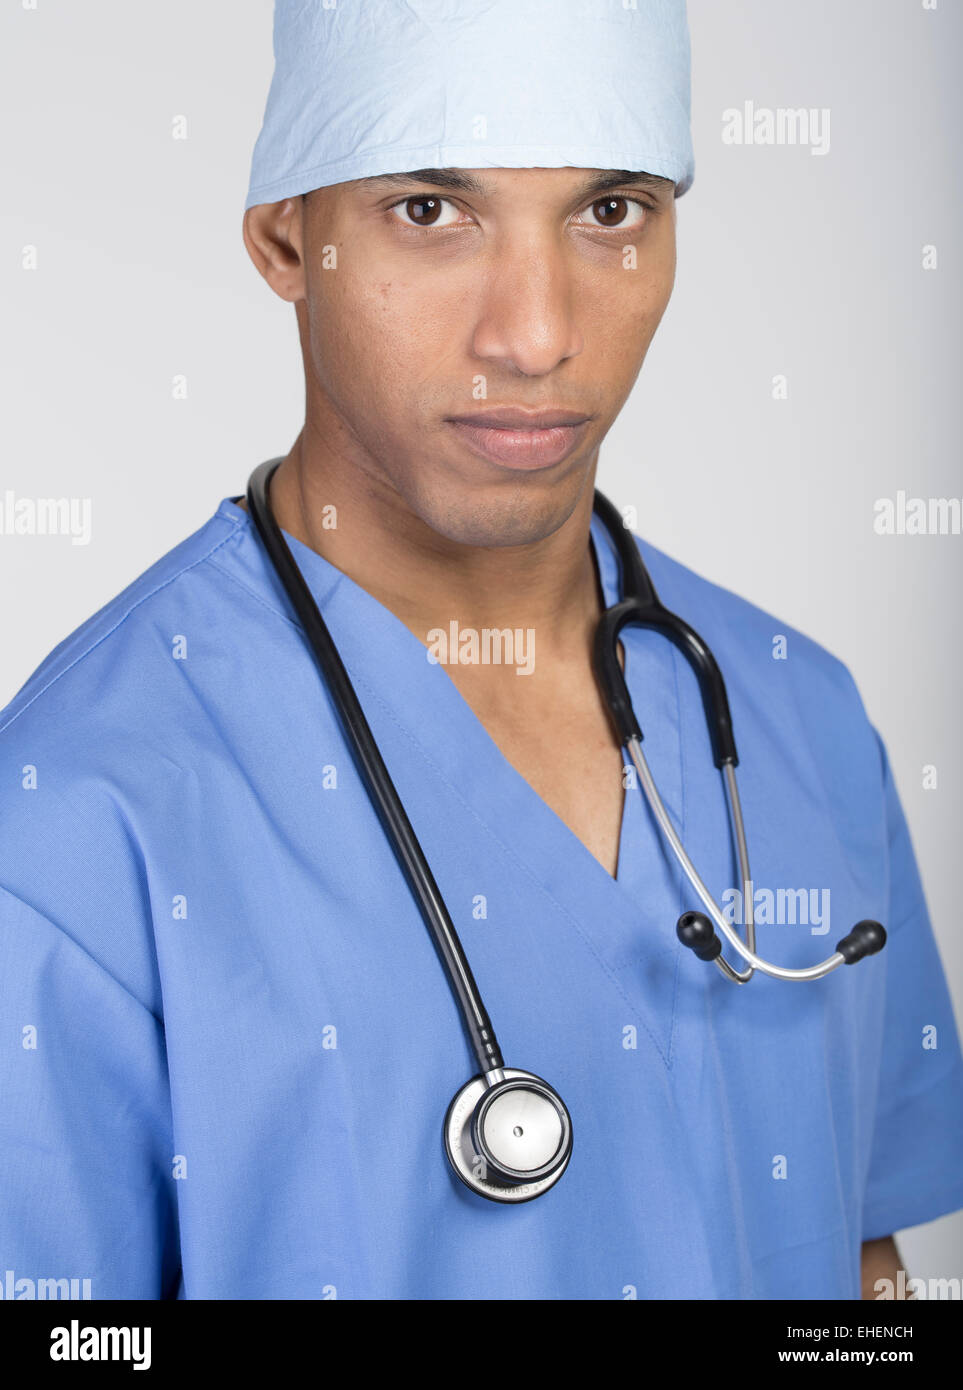 Young doctor / medical student - Stock Image